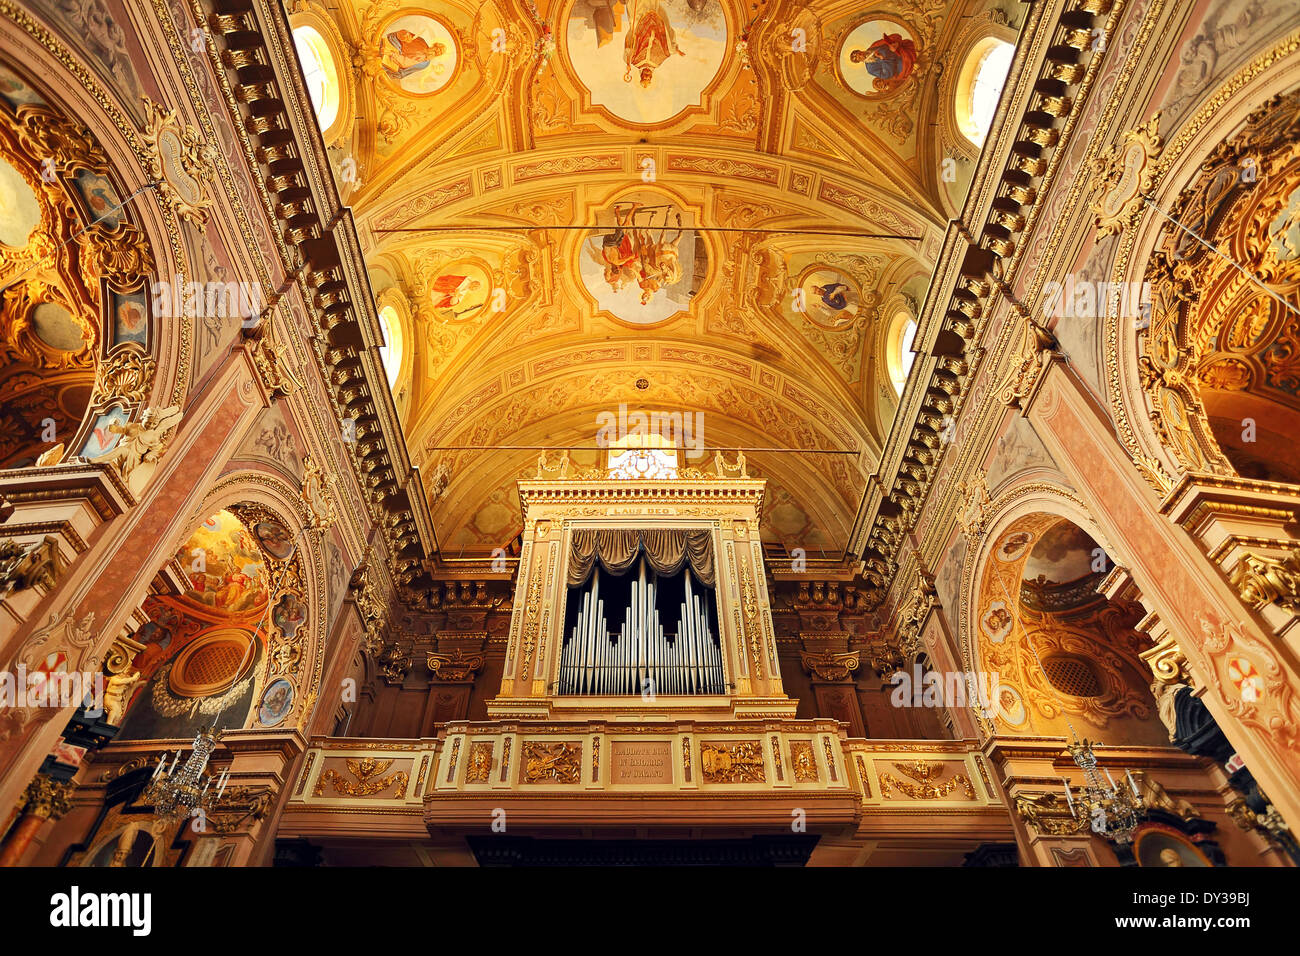 Organ and fragment of ornate ceiling as part of catholic church interior in Italy. - Stock Image